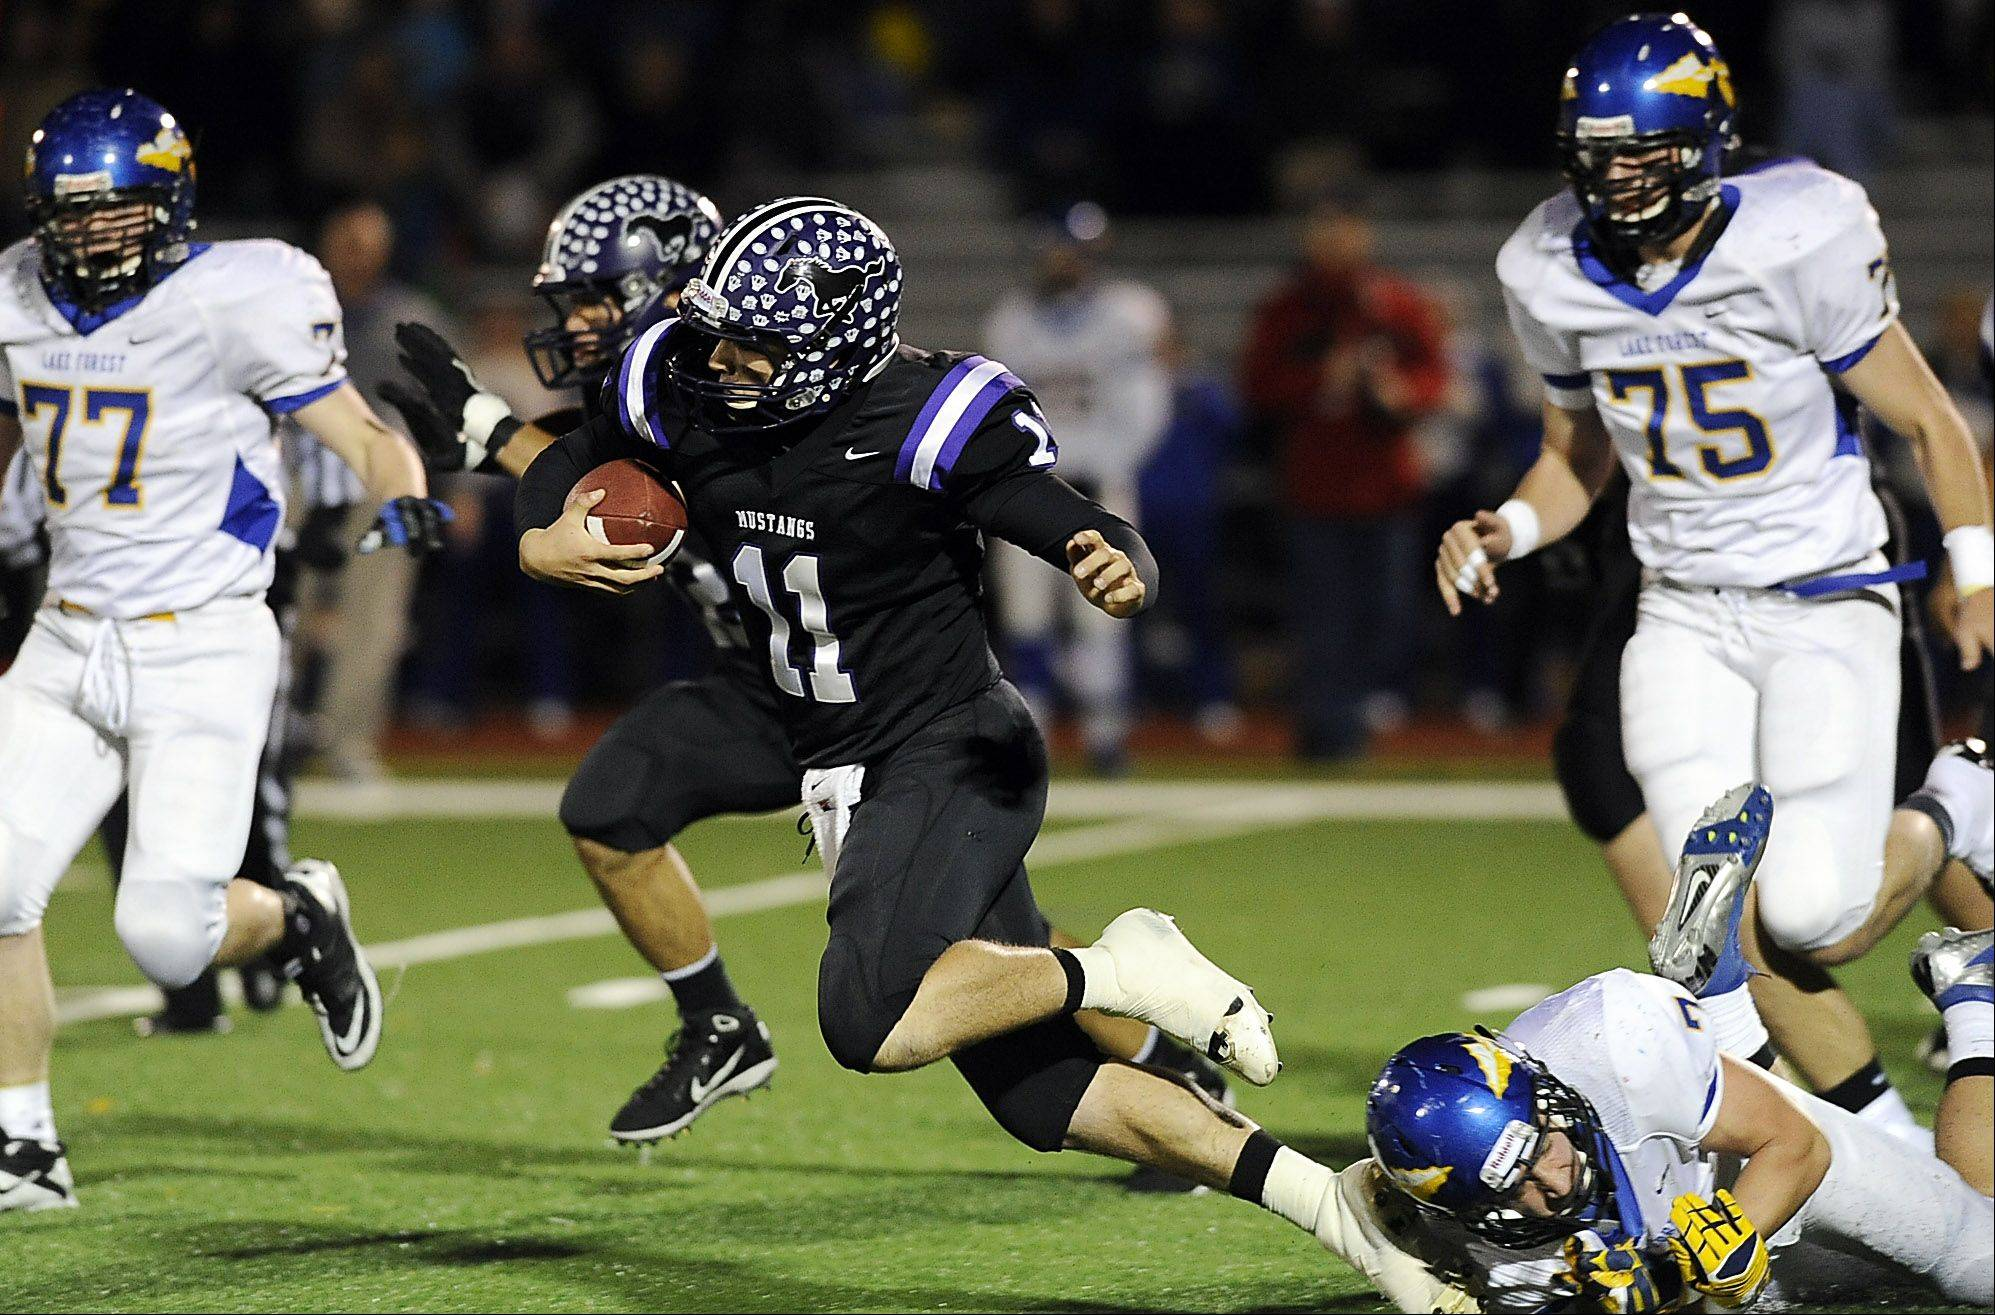 Rolling Meadow's Jack Milas runs for yardage but is tripped up by Lake Forest's Thomas Kutschke in the first quarter in the Class 6A playoff football game at Rolling Meadows High School on Friday.